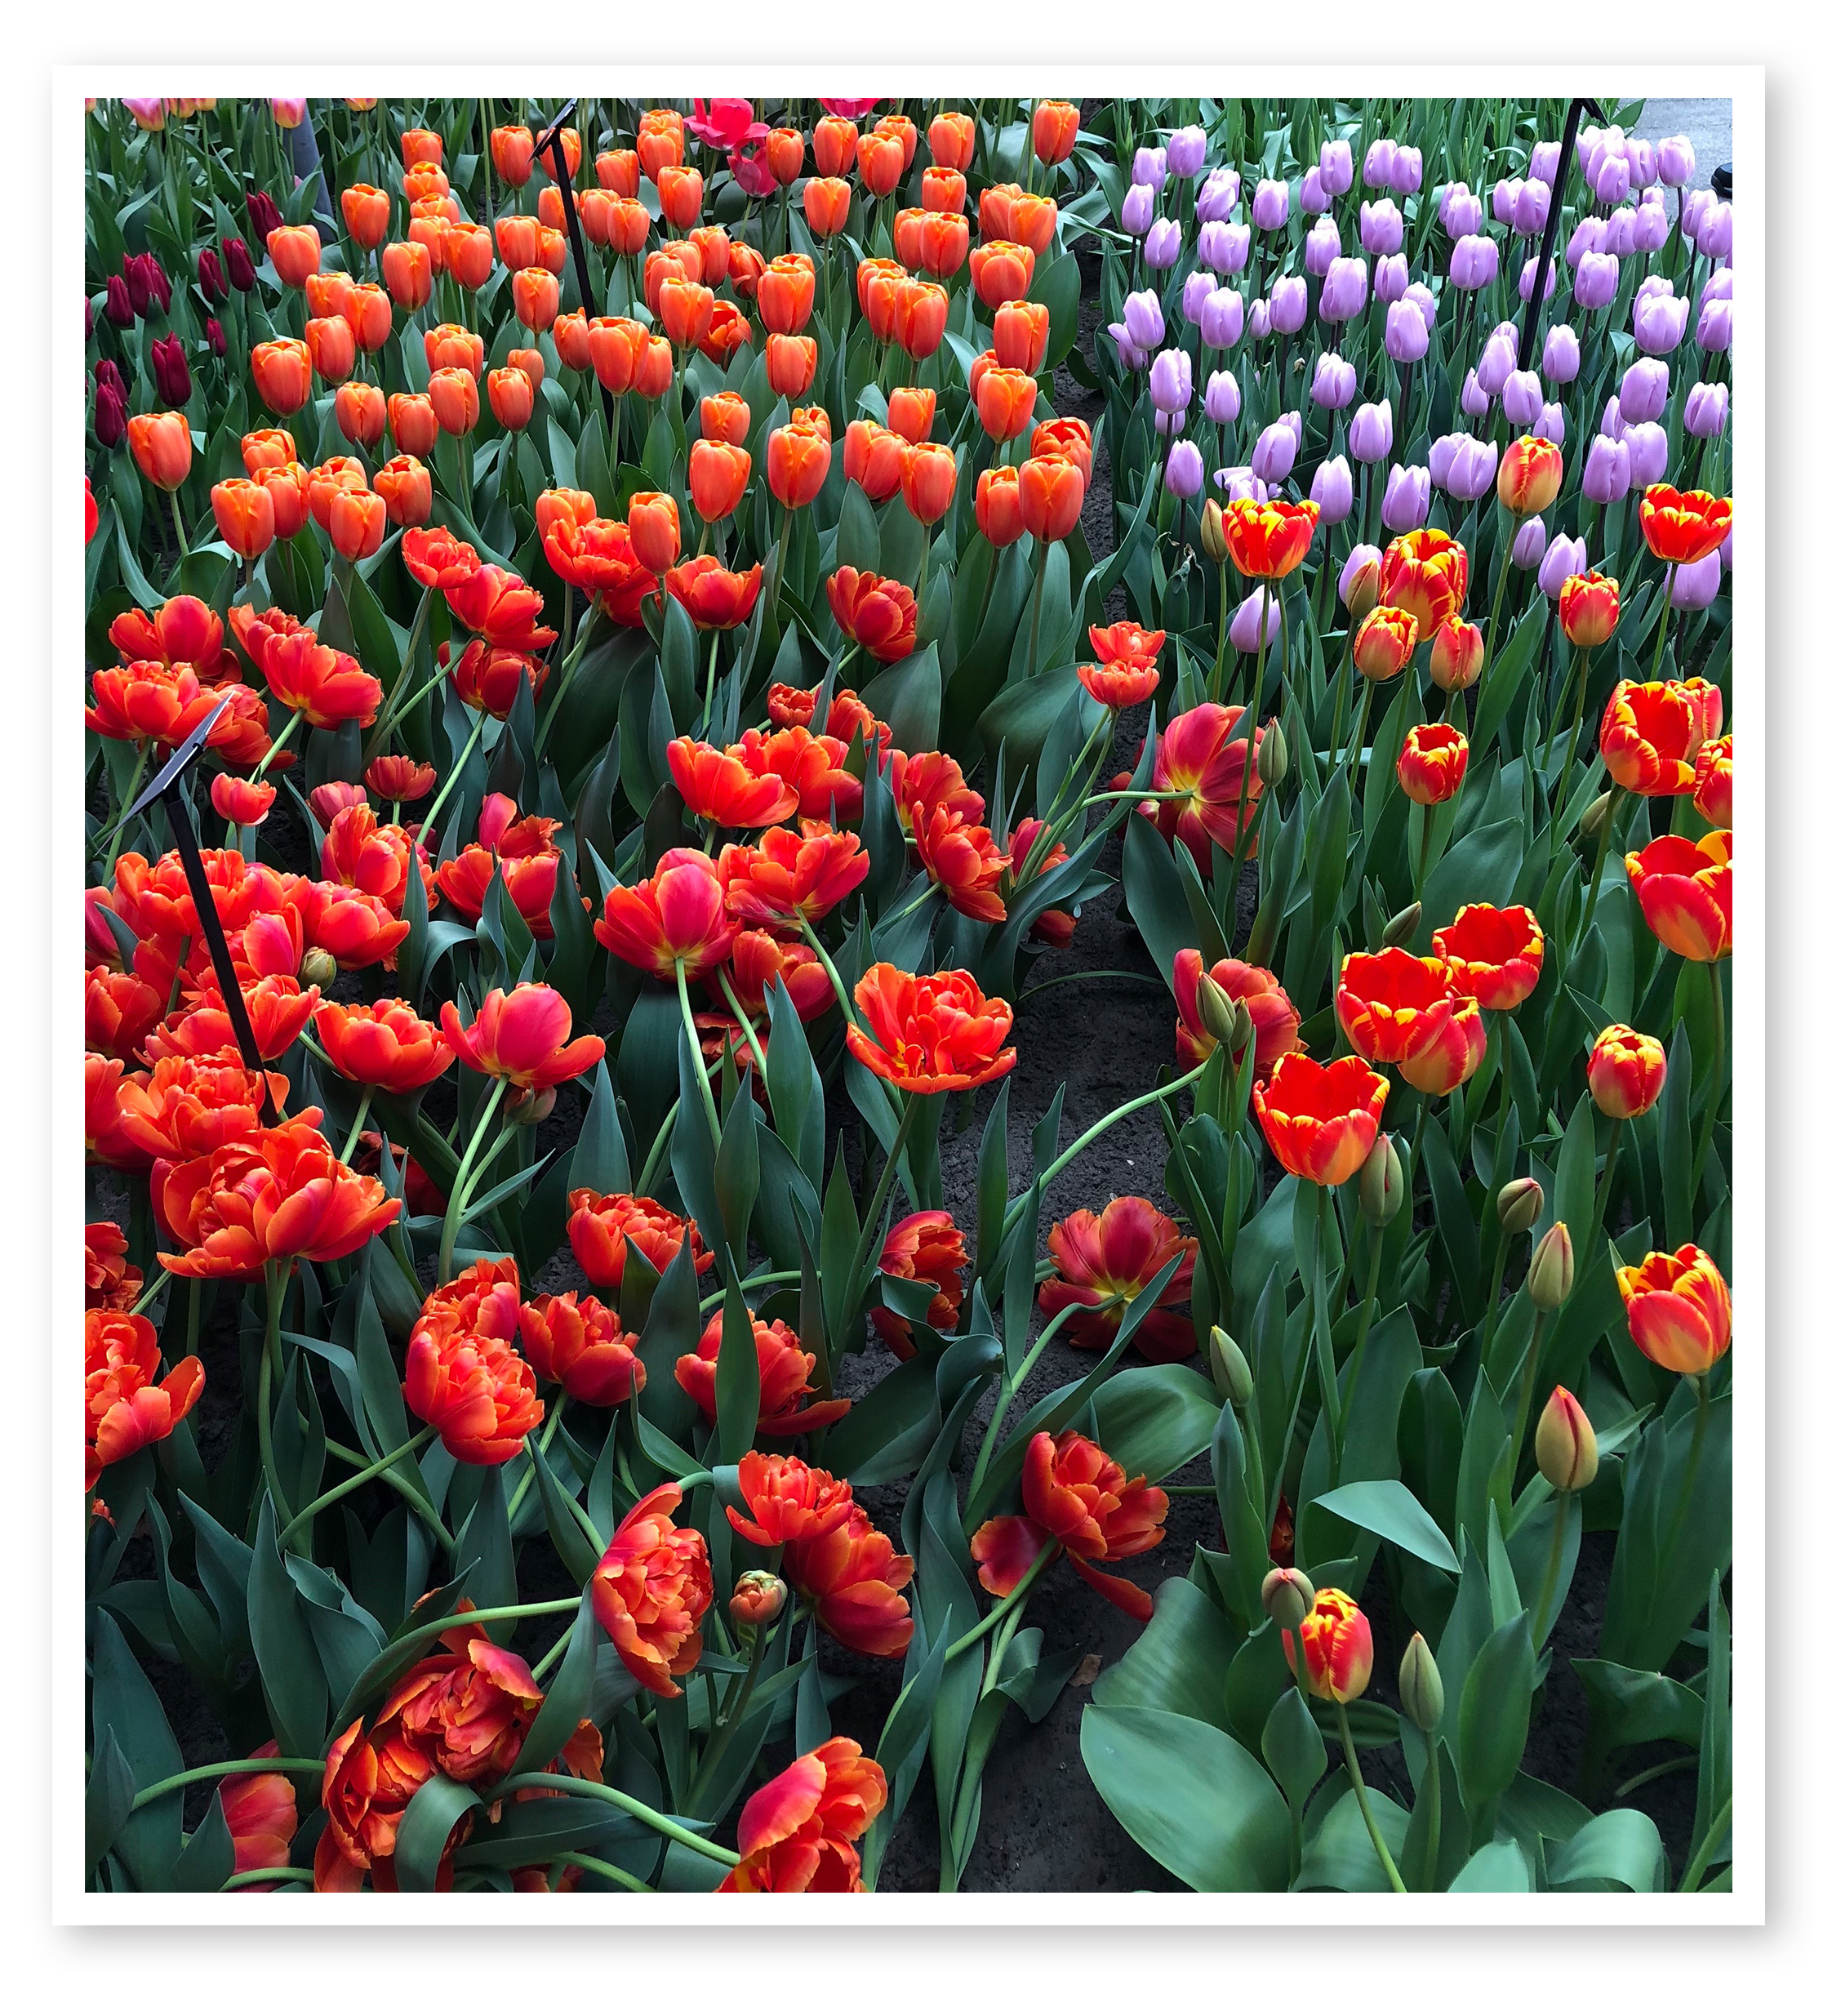 Dreaming of Spring flowers? Marilyn Varcoe of the Naples Chapter viewed the Tulip festival in Holland and came up with this gorgeous shot. Every month, we are looking for great photos for The Last Shot. Please send us your shots!